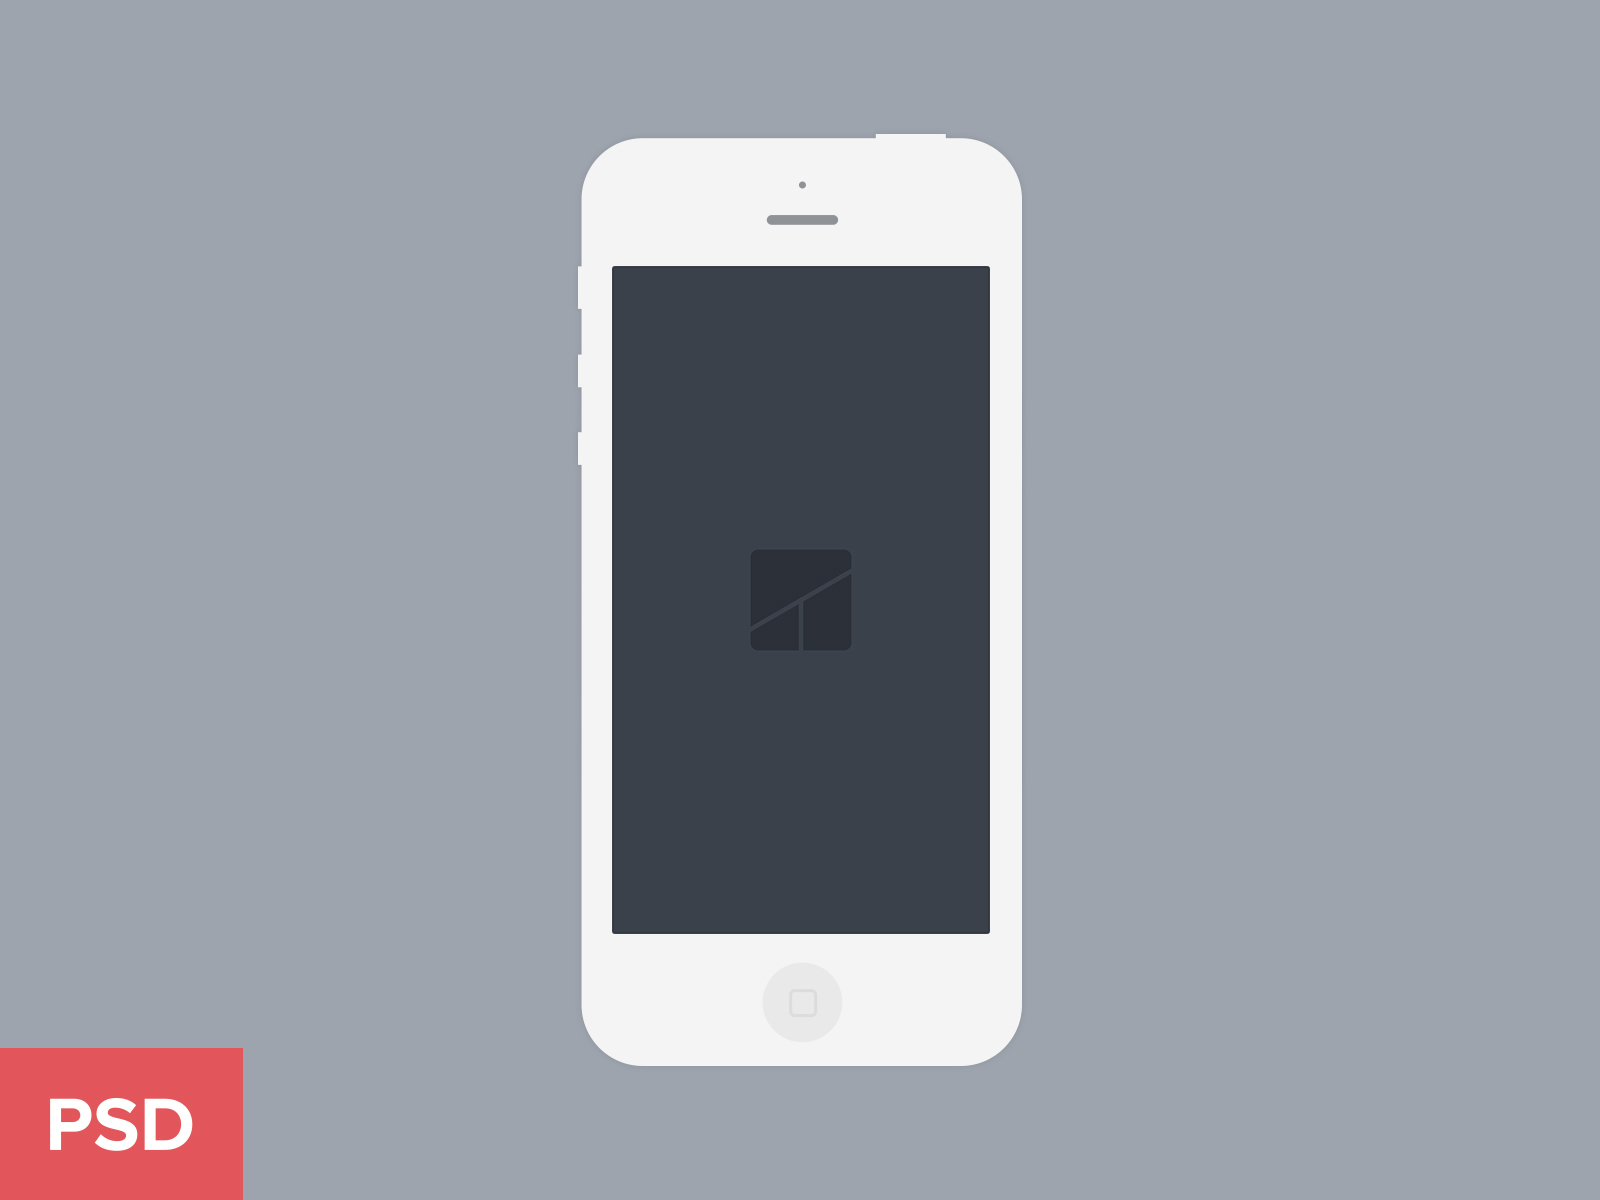 14 White IPhone 5 PSD Images